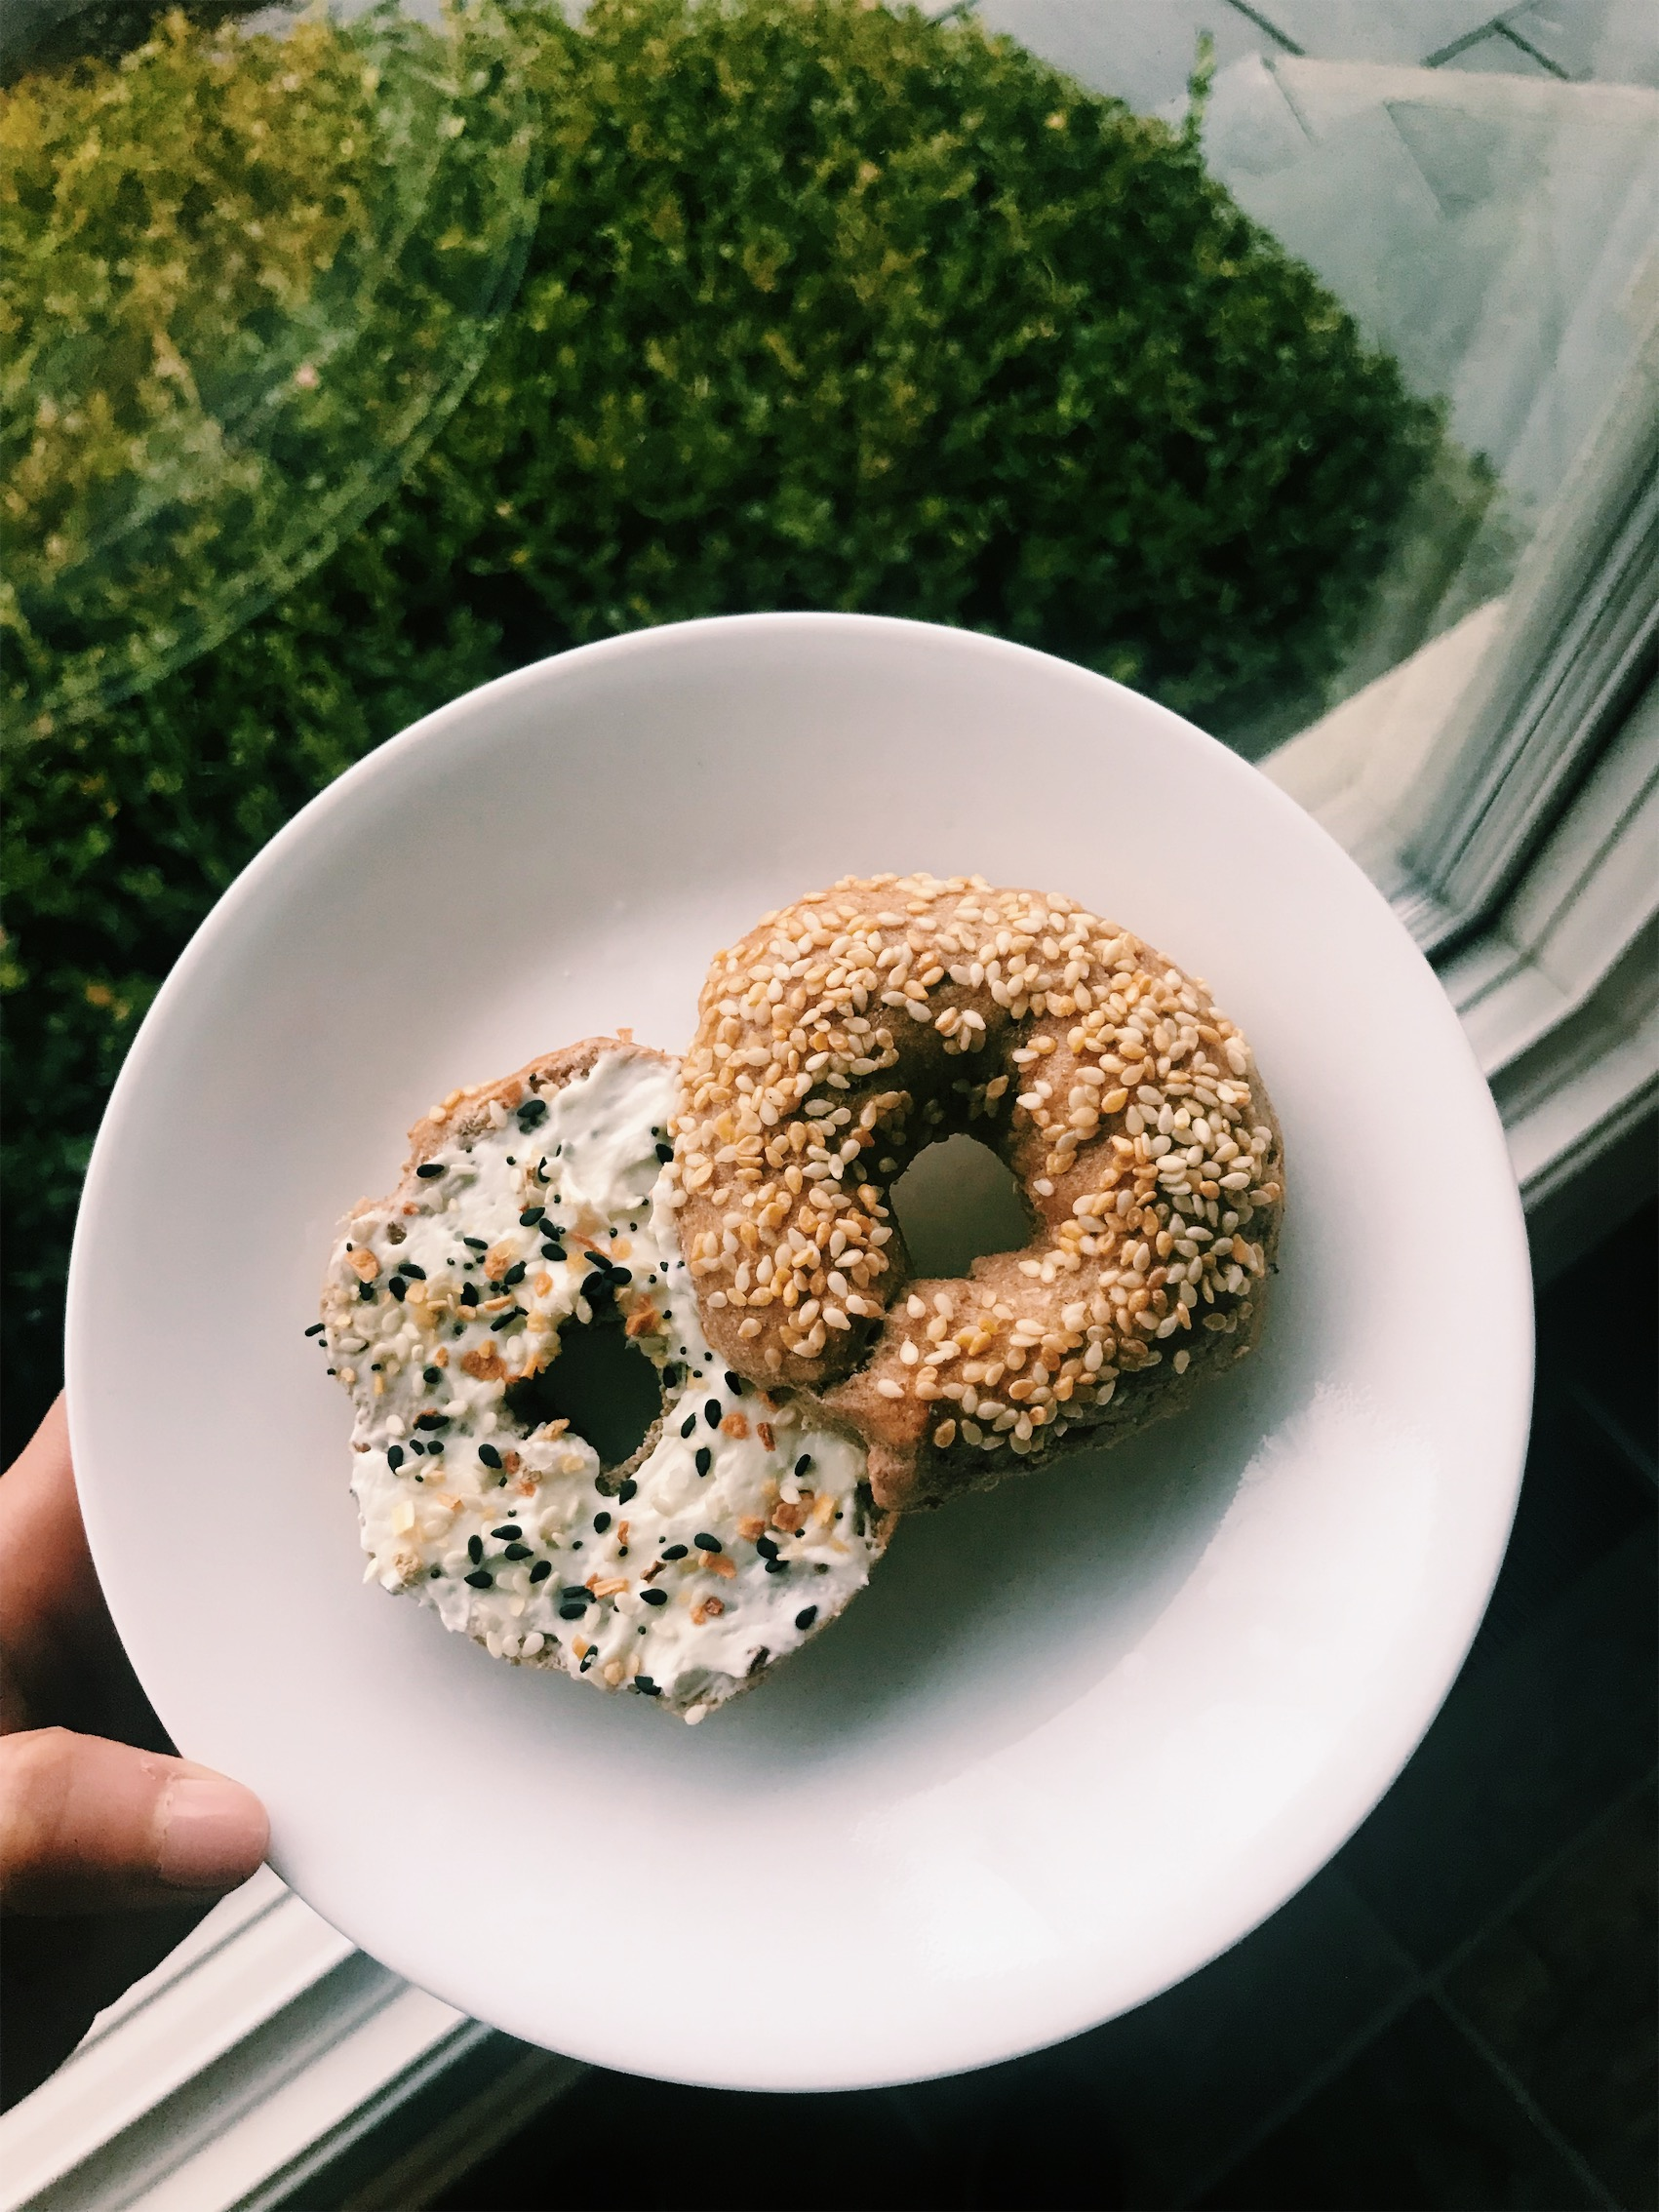 A sesame bagel made with the original whole wheat recipe.